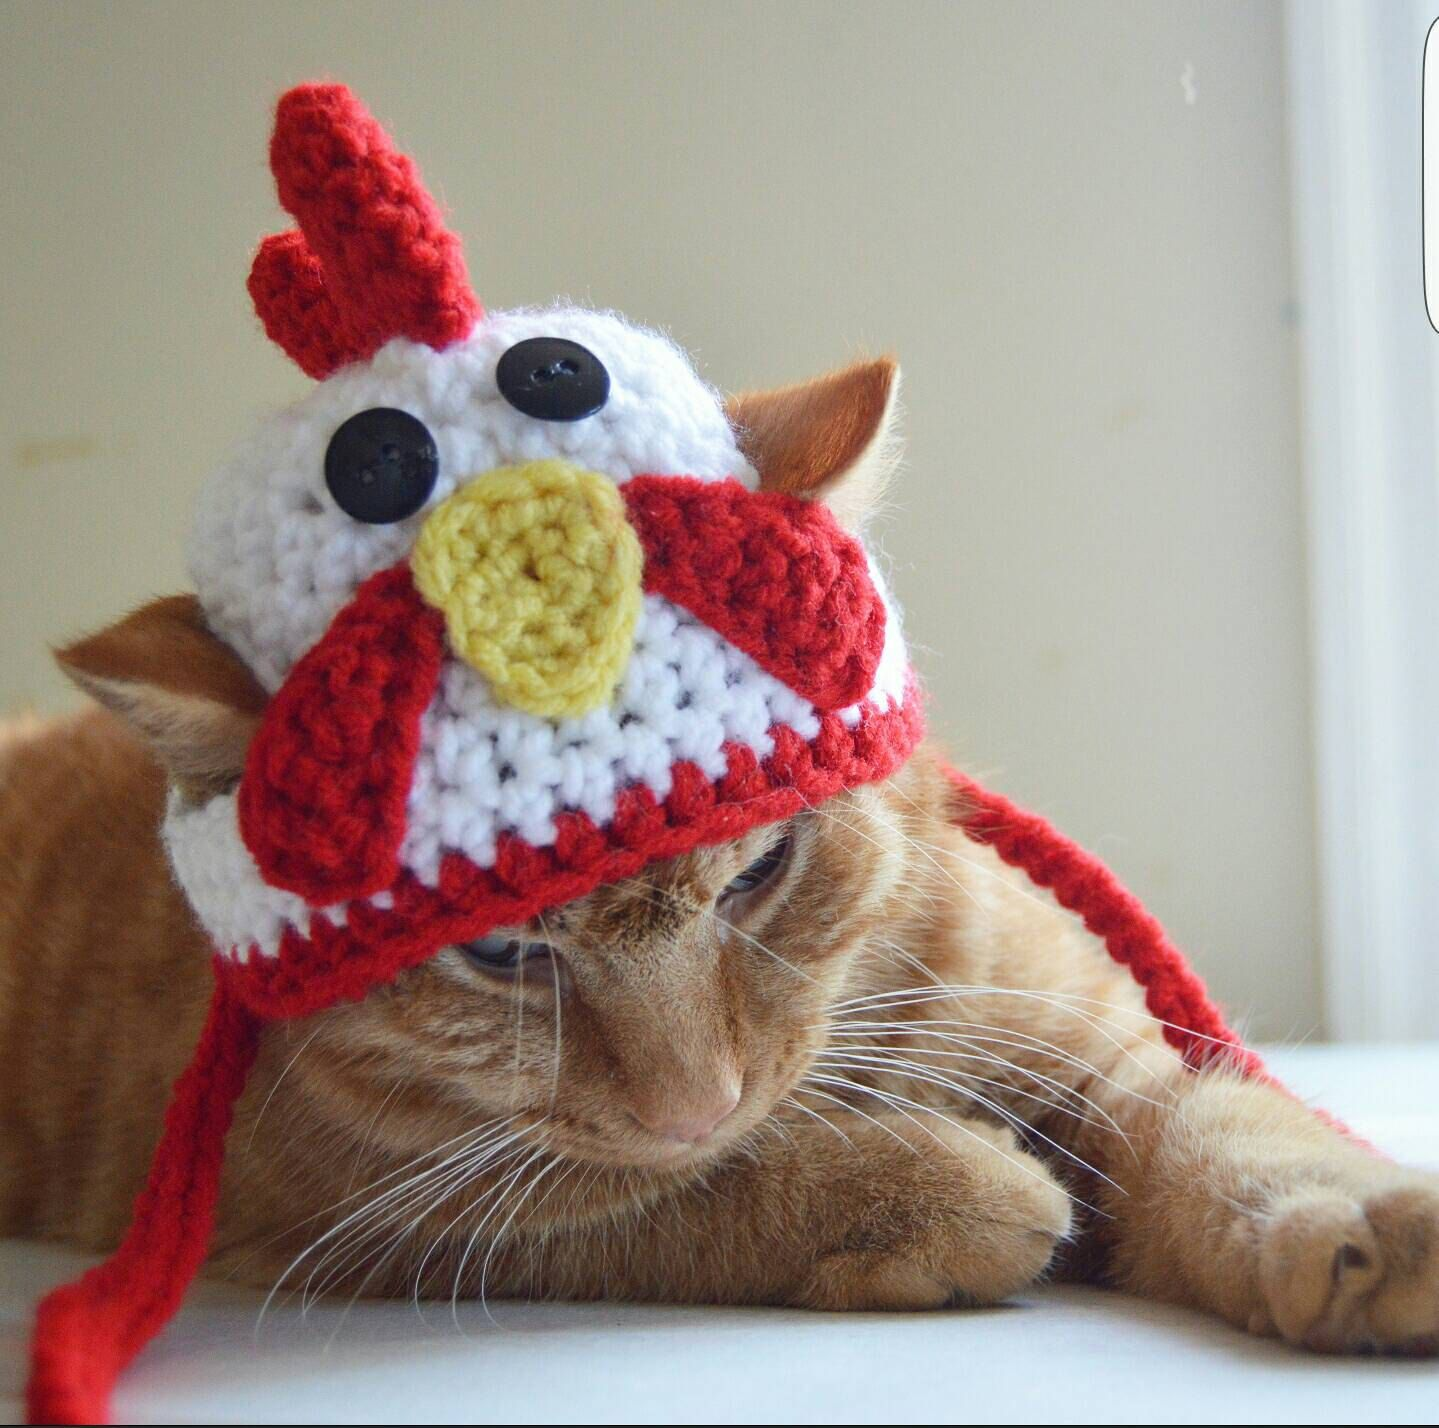 Old Macdonald May Have Had A Farm But I Bet He Never Had A Kitty Wearing A Rooster Cat Hat This Fun Rooster Hat For Cat Hat For Cat Hats For